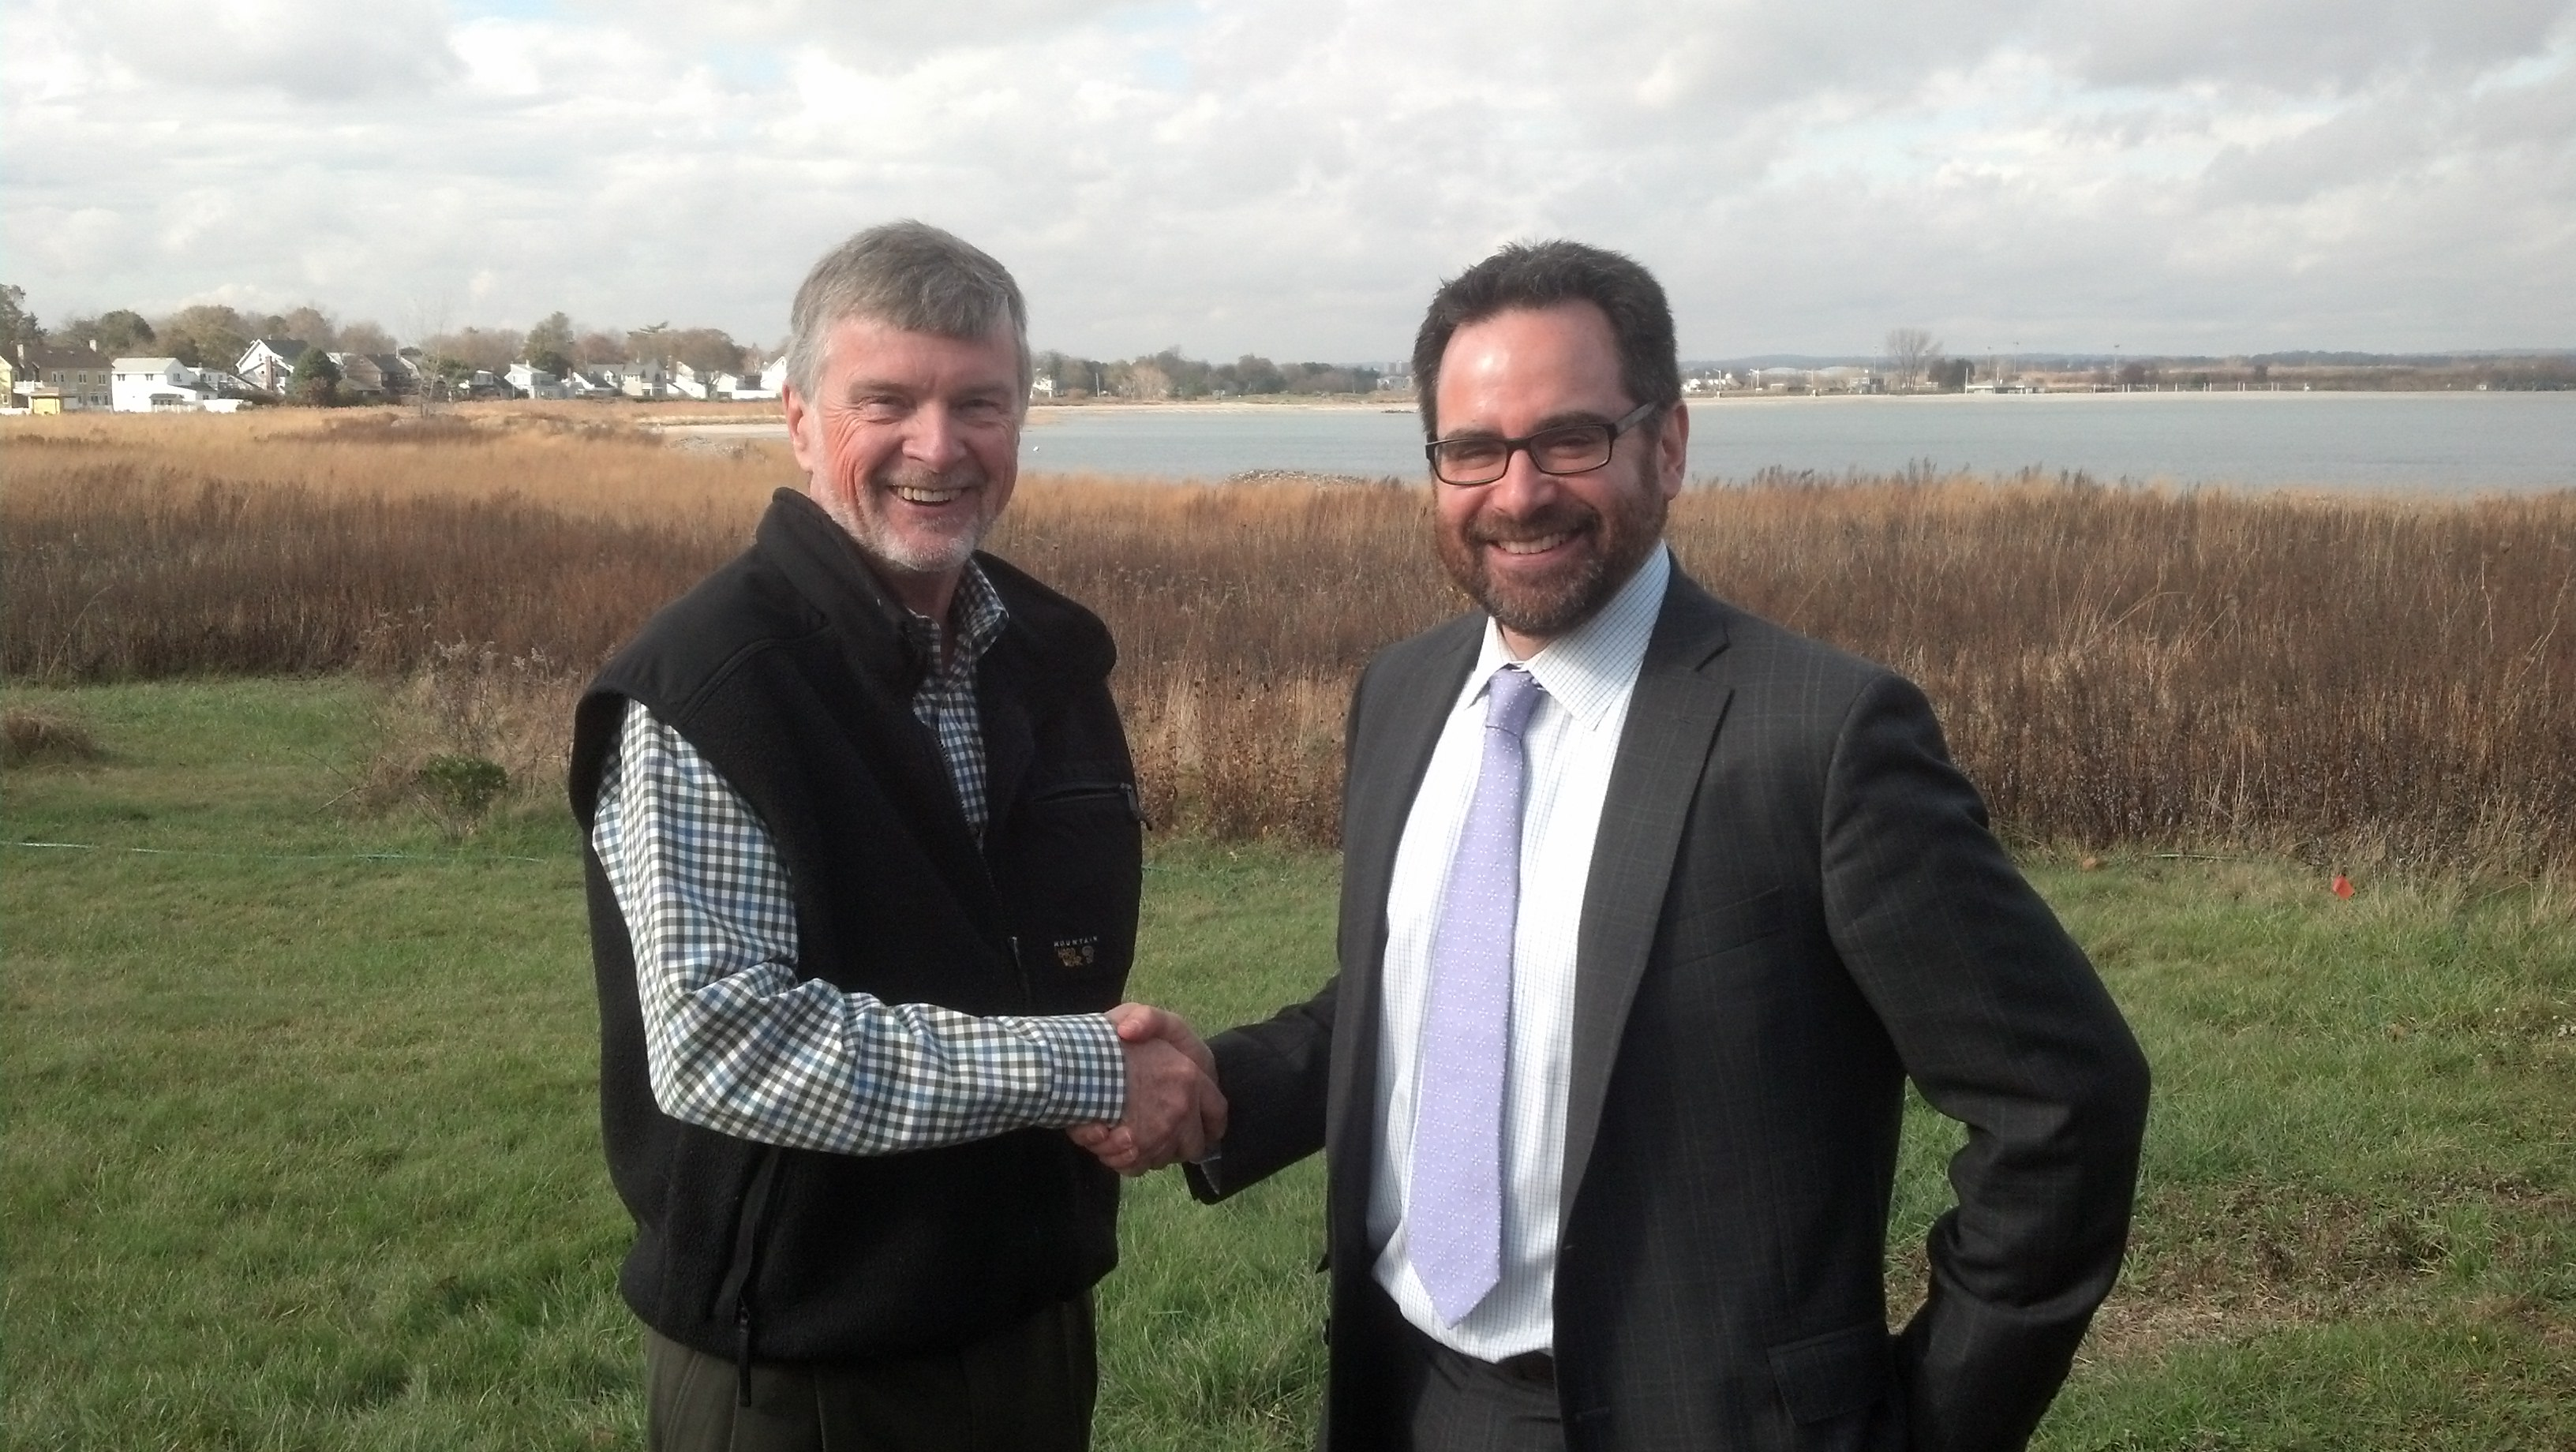 Grant To Fund Coastal Resilience Management Plan For Dodge Paddock/Beal Preserve